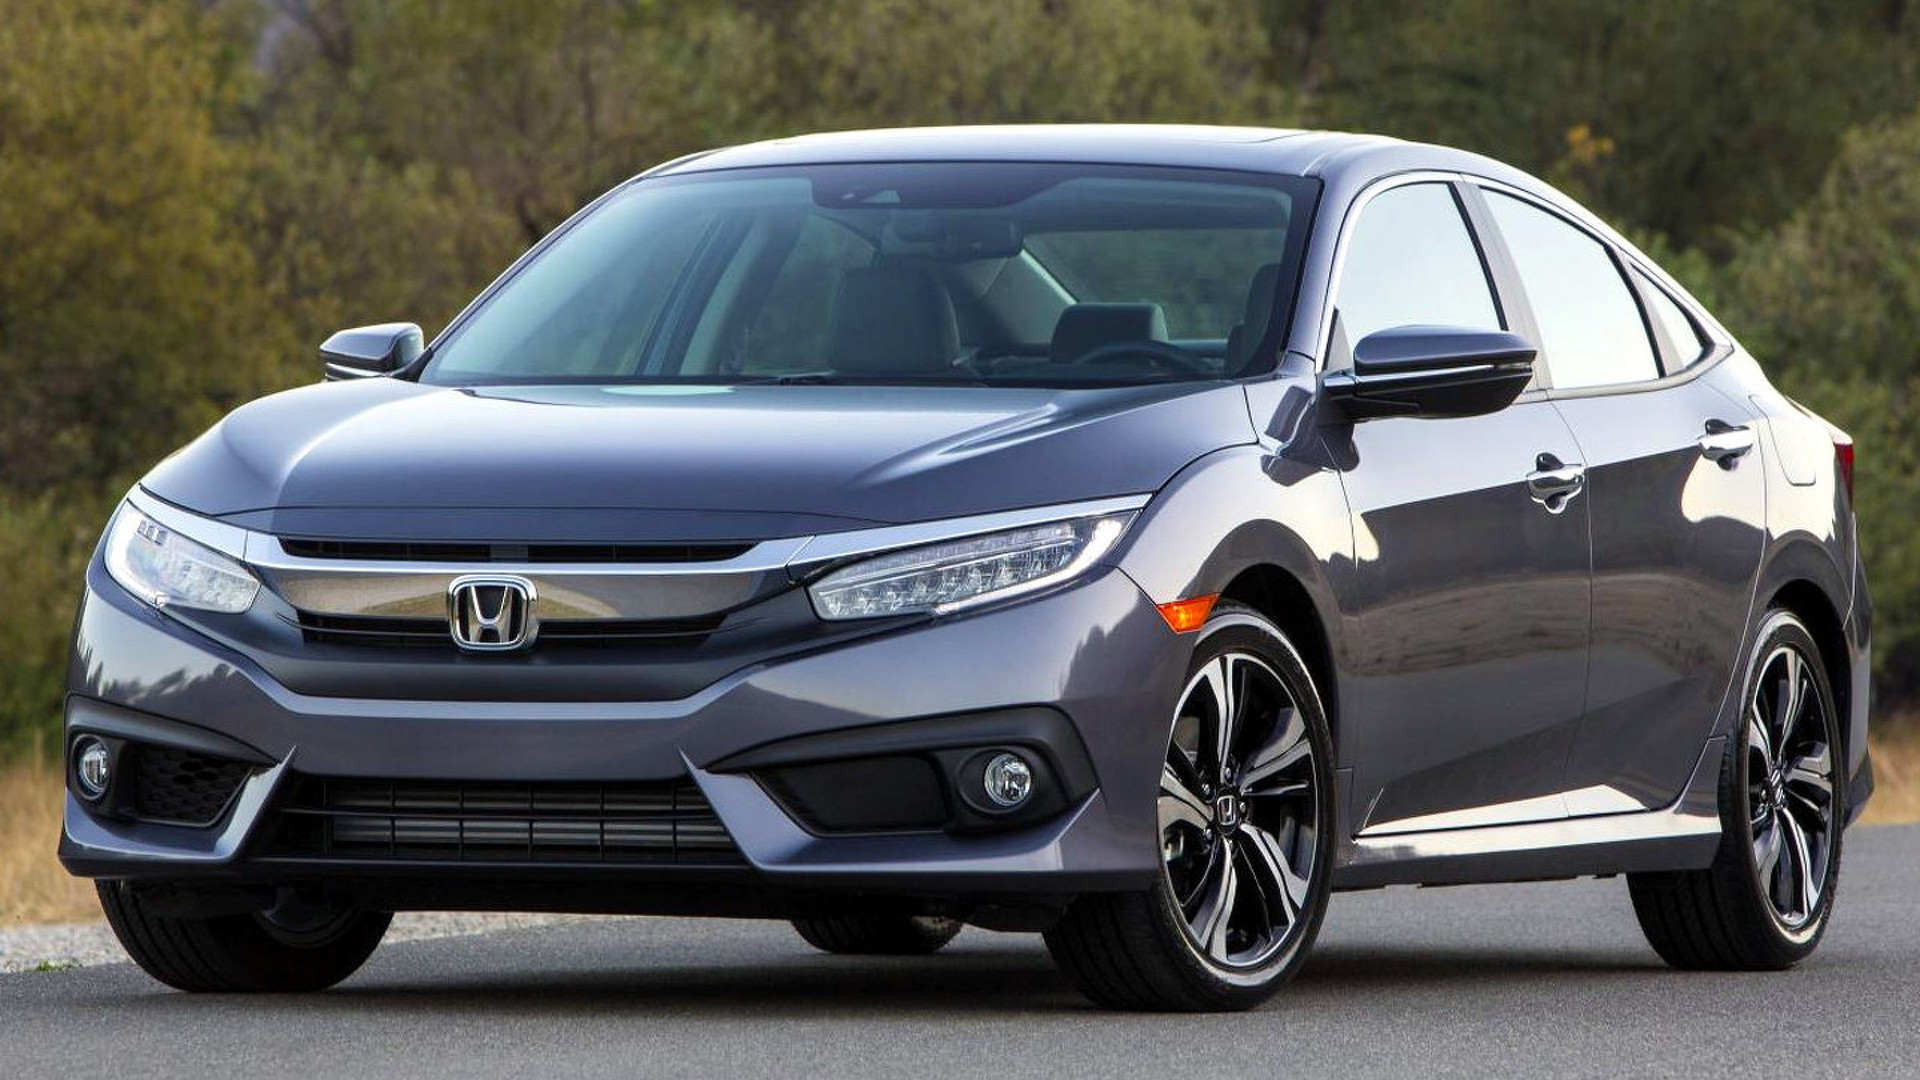 2016 Honda Civic full pricing officially announced, new mega gallery released (162 photos)